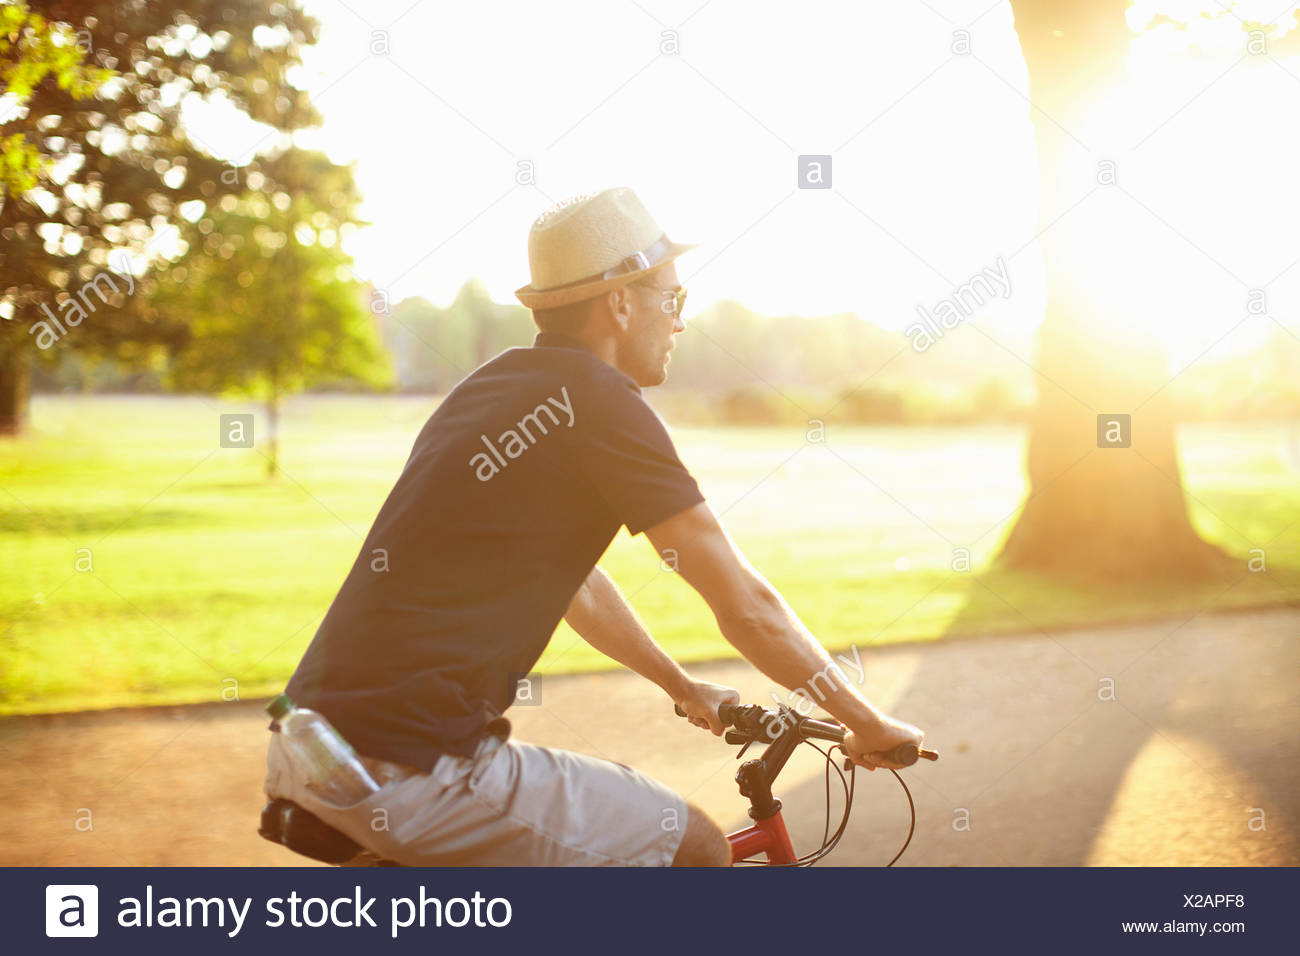 Mid adult man riding bicycle in sunlit park Photo Stock